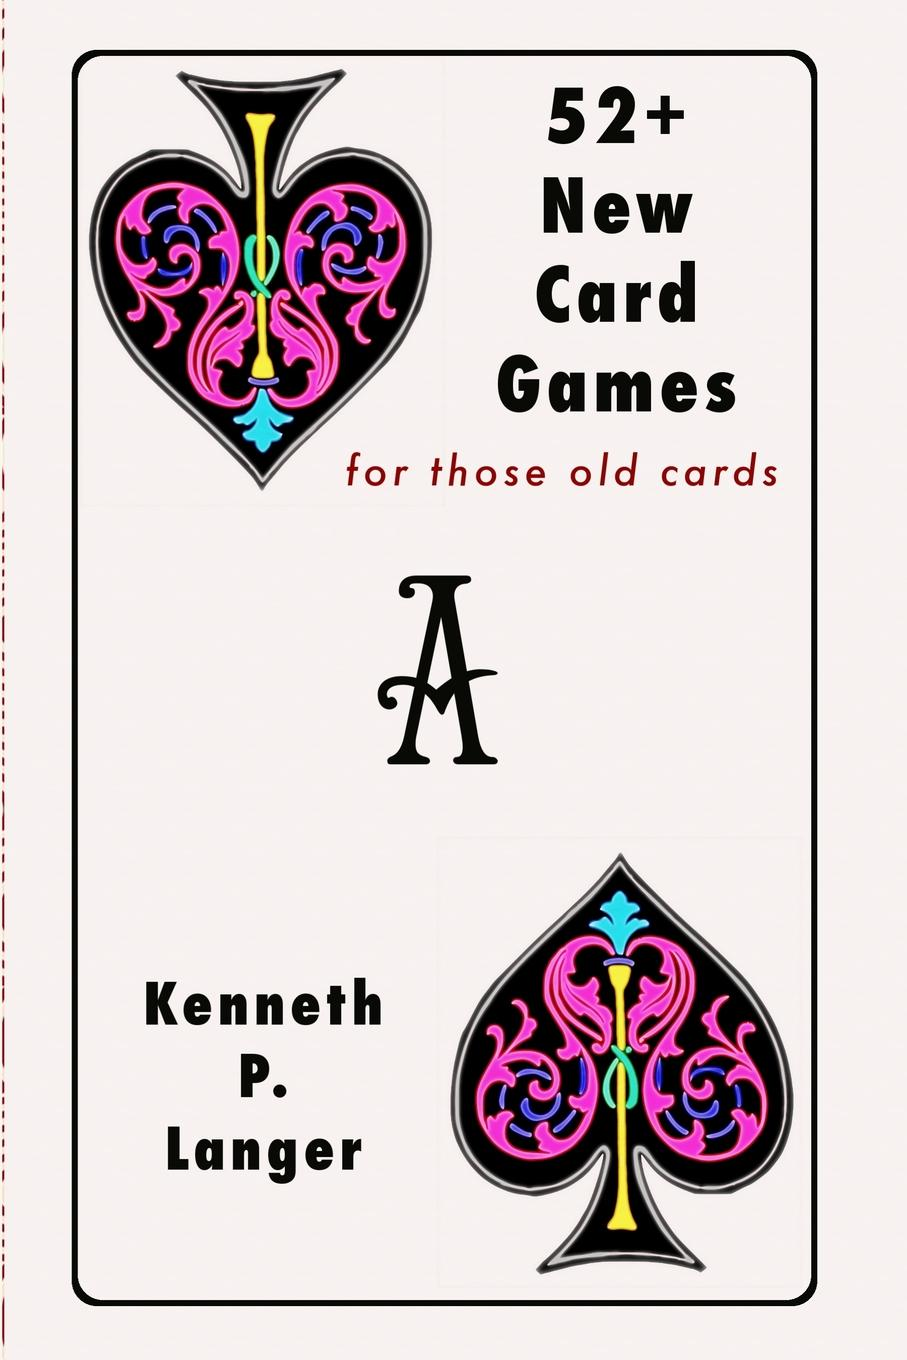 Kenneth P Langer 52. New Card Games kenneth norman cook from dark corners and dusty attics